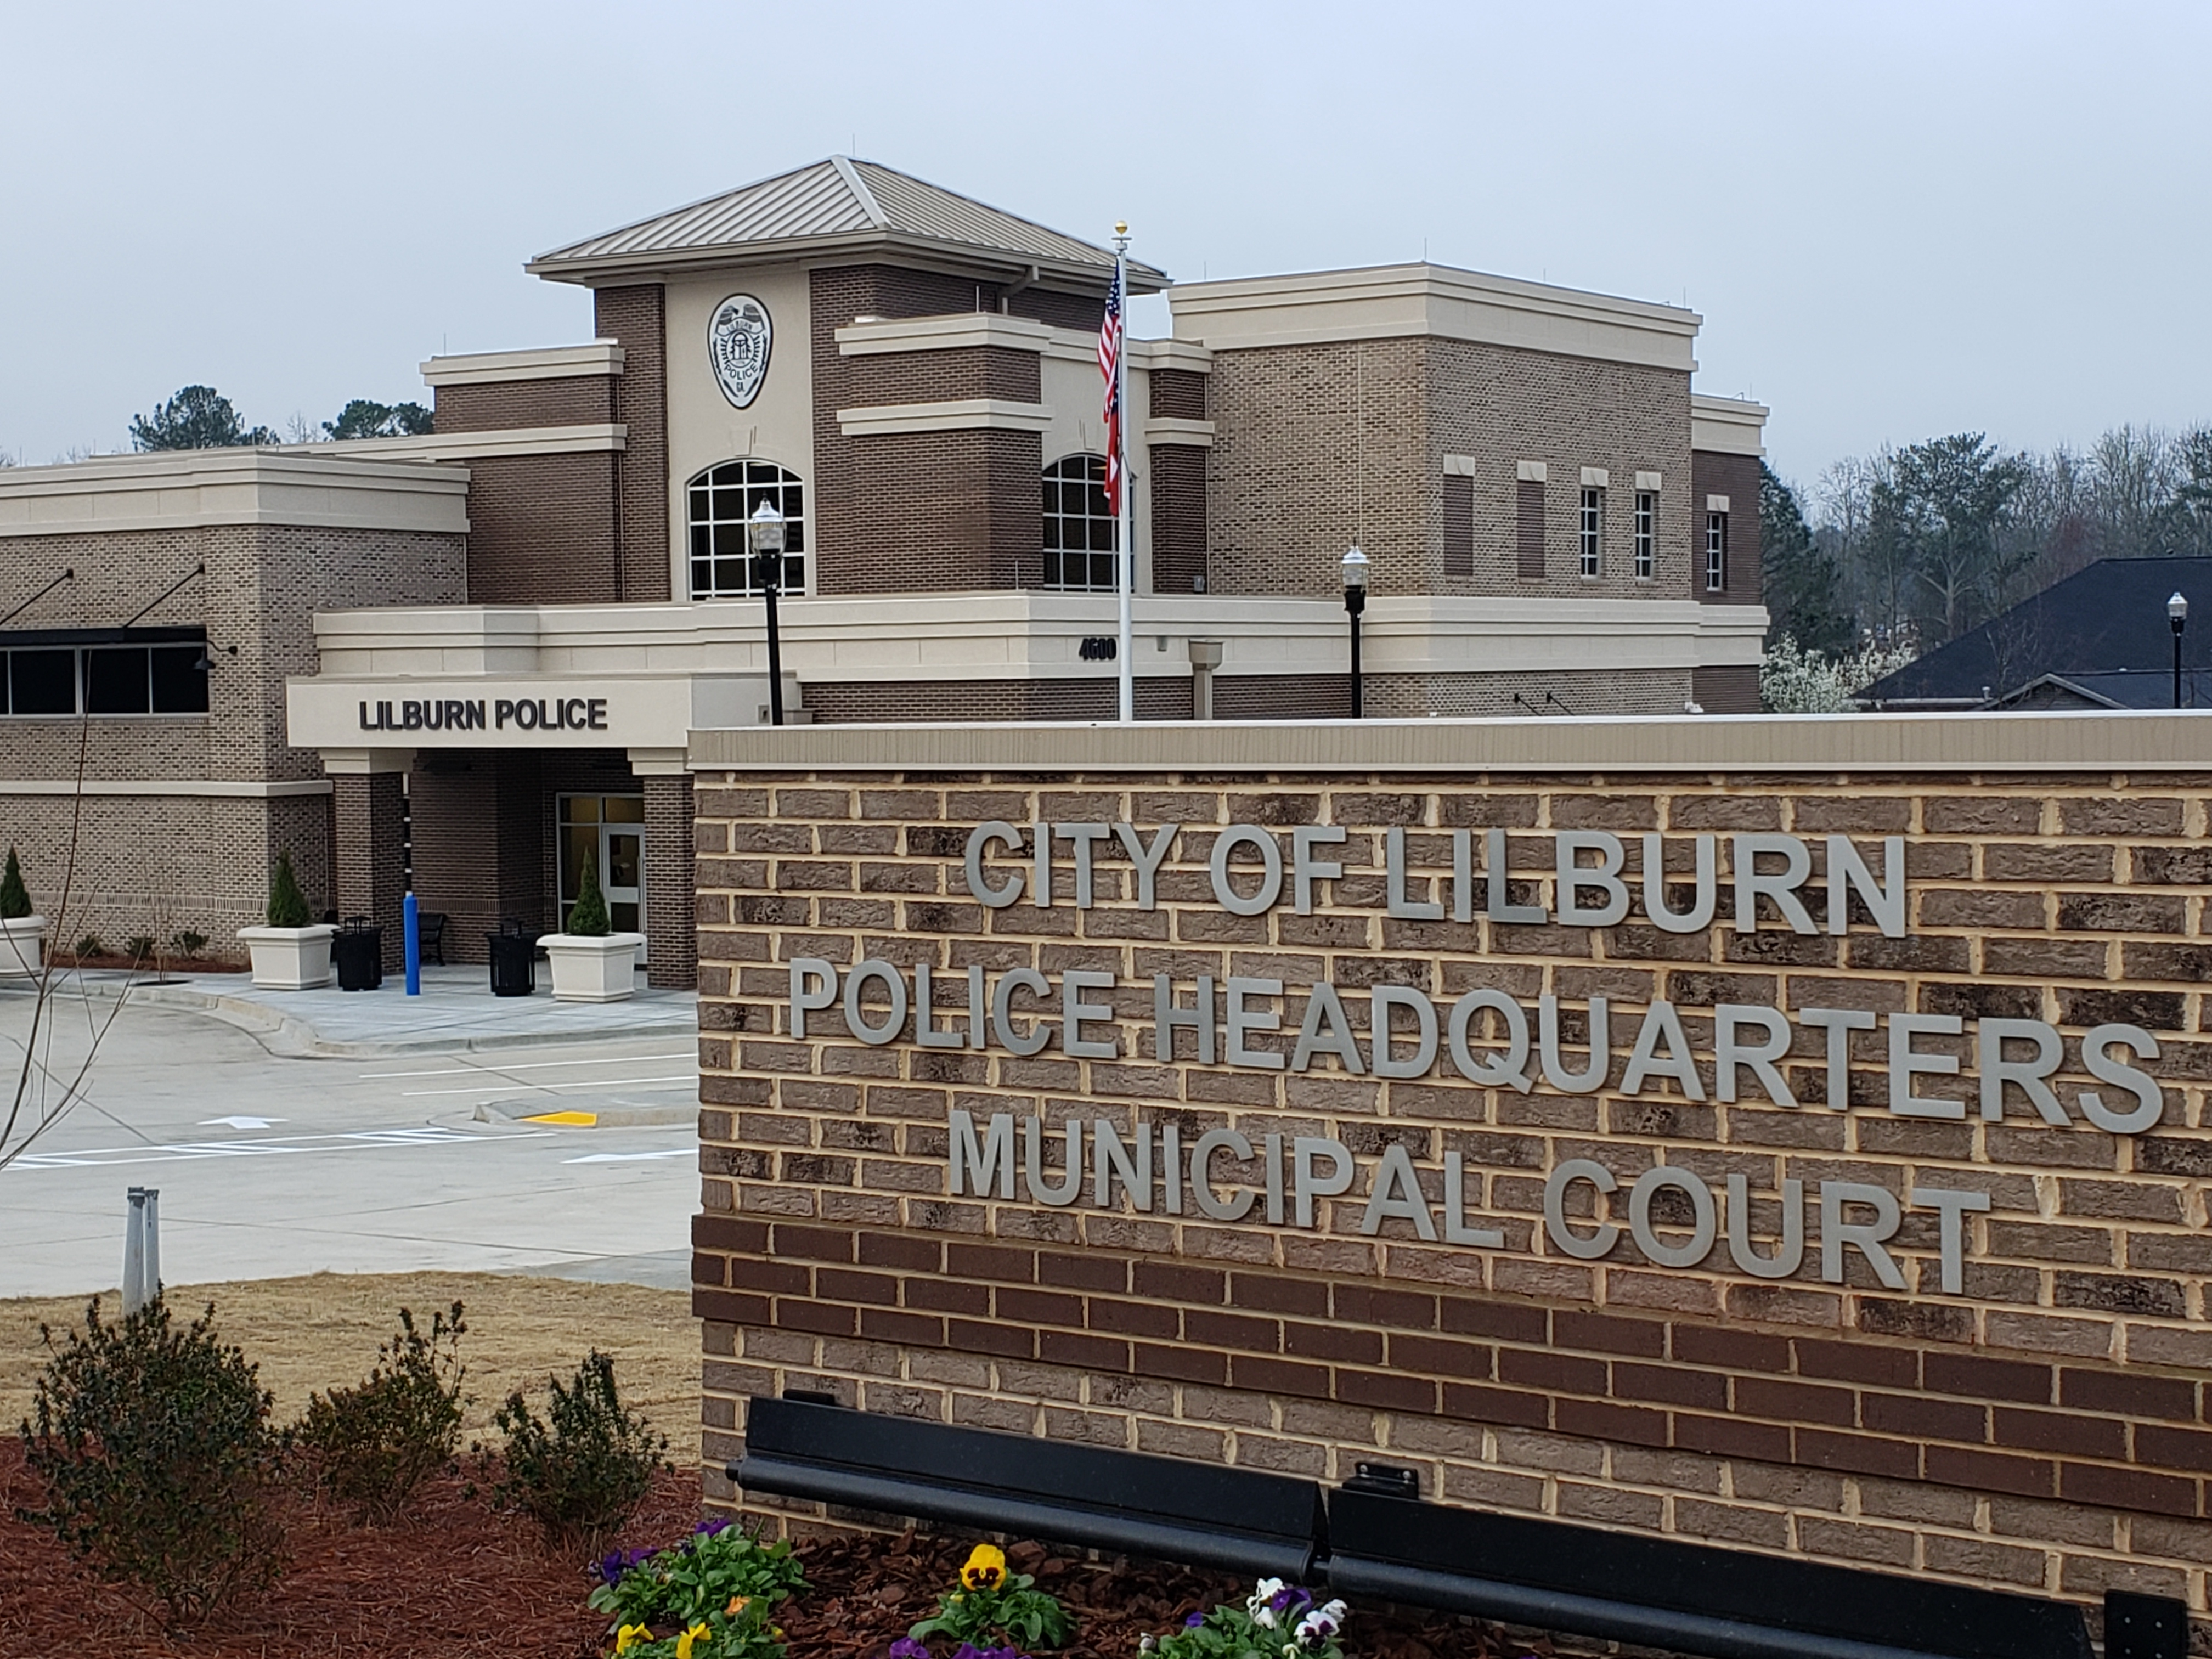 City of Lilburn Police Department and Municipal Court